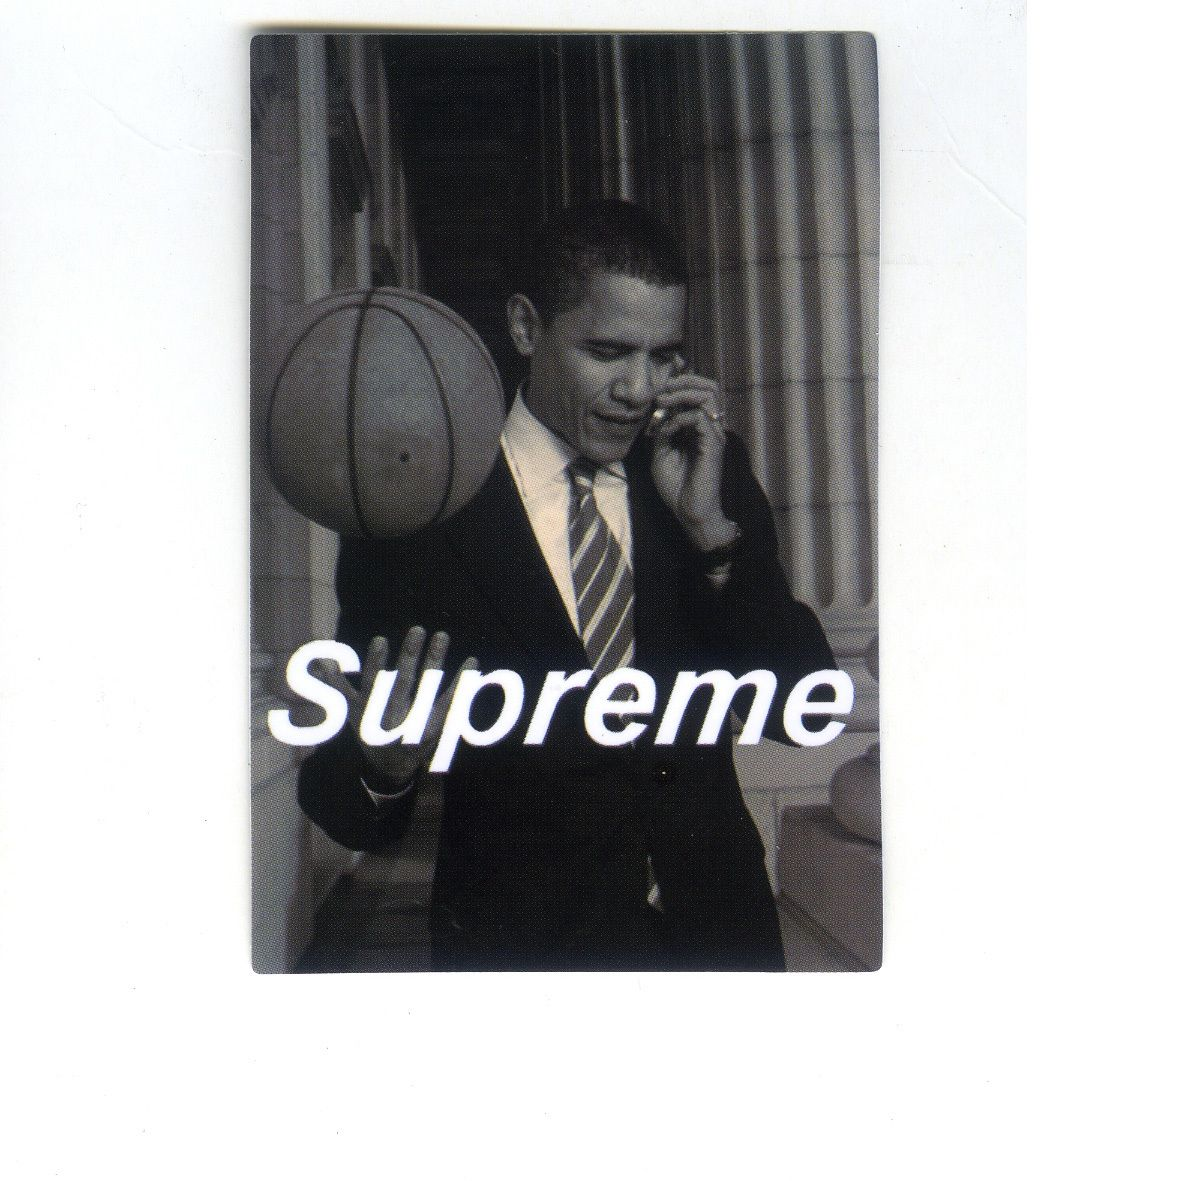 1441 Supreme President Obama Playing Basketball 8 Cm Decal Sticker Supreme Wallpaper Supreme Iphone Wallpaper Hype Wallpaper